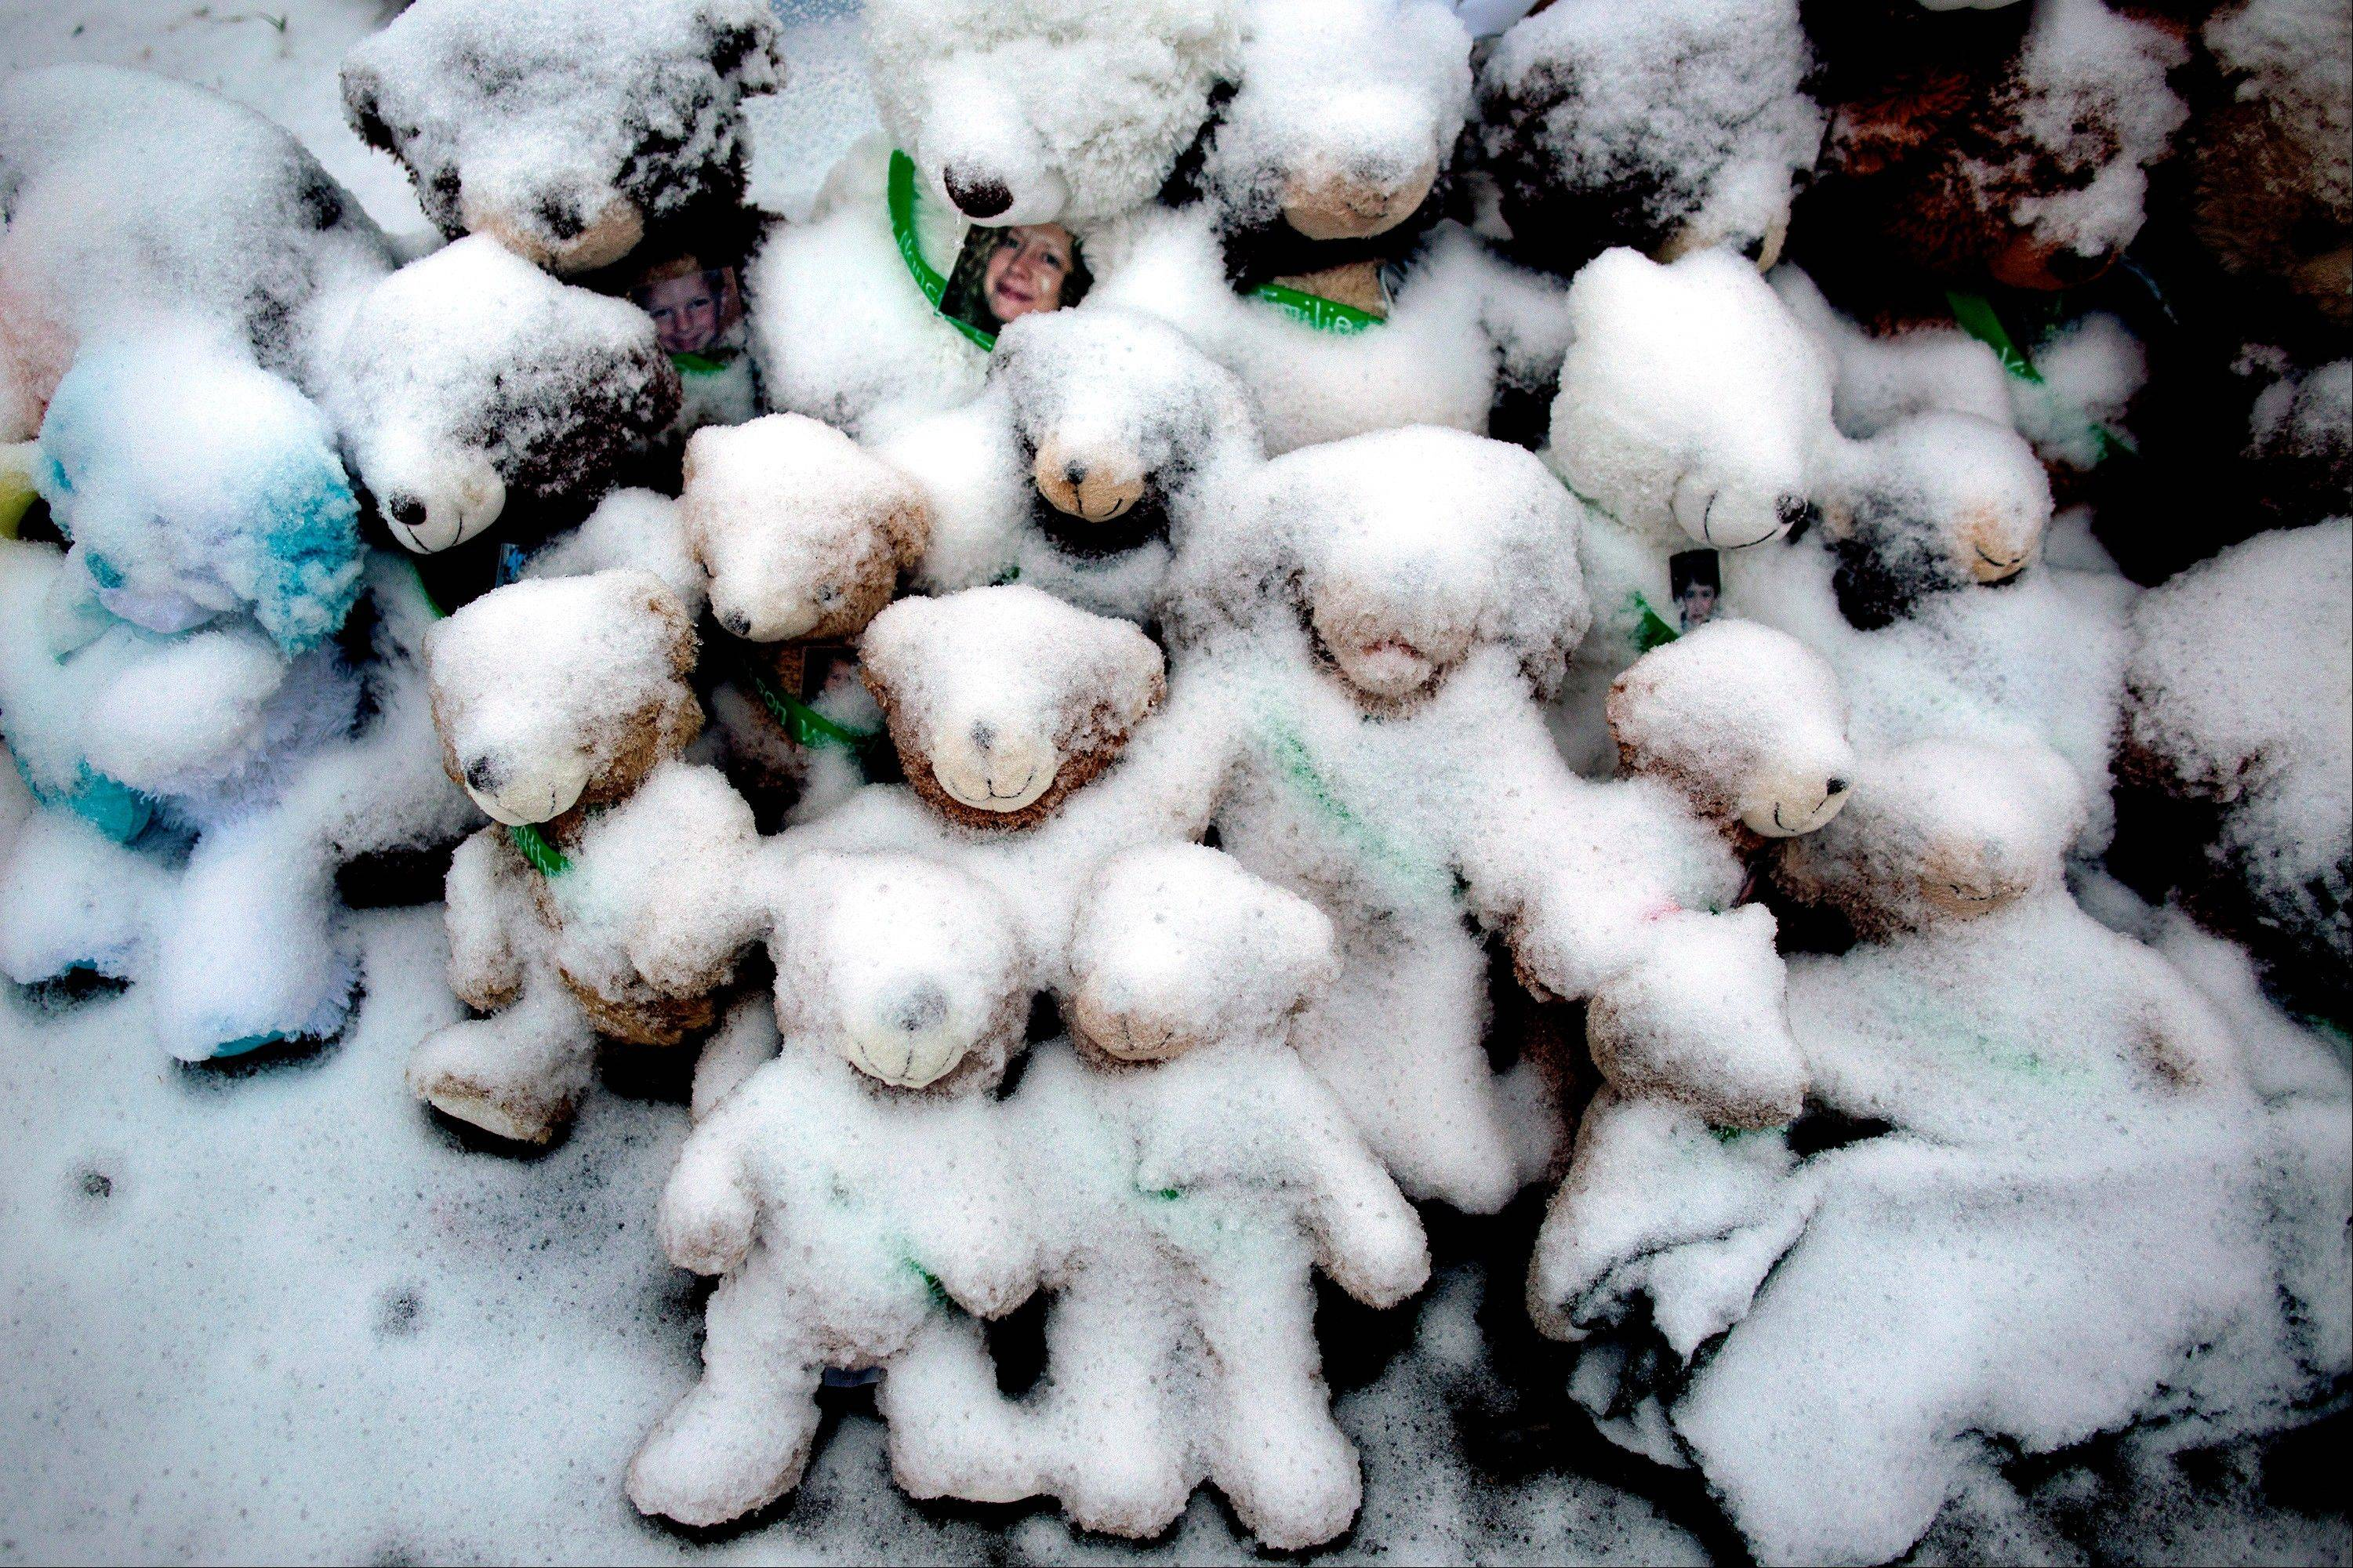 Snow-covered stuffed animals with photos attached sit at a memorial in Newtown, Conn. Police escorted parents and other family members of children and educators killed at Newtown's Sandy Hook Elementary School on Friday to the massive memorial of candles, handwritten cards, stuffed animals and more before the items were removed.